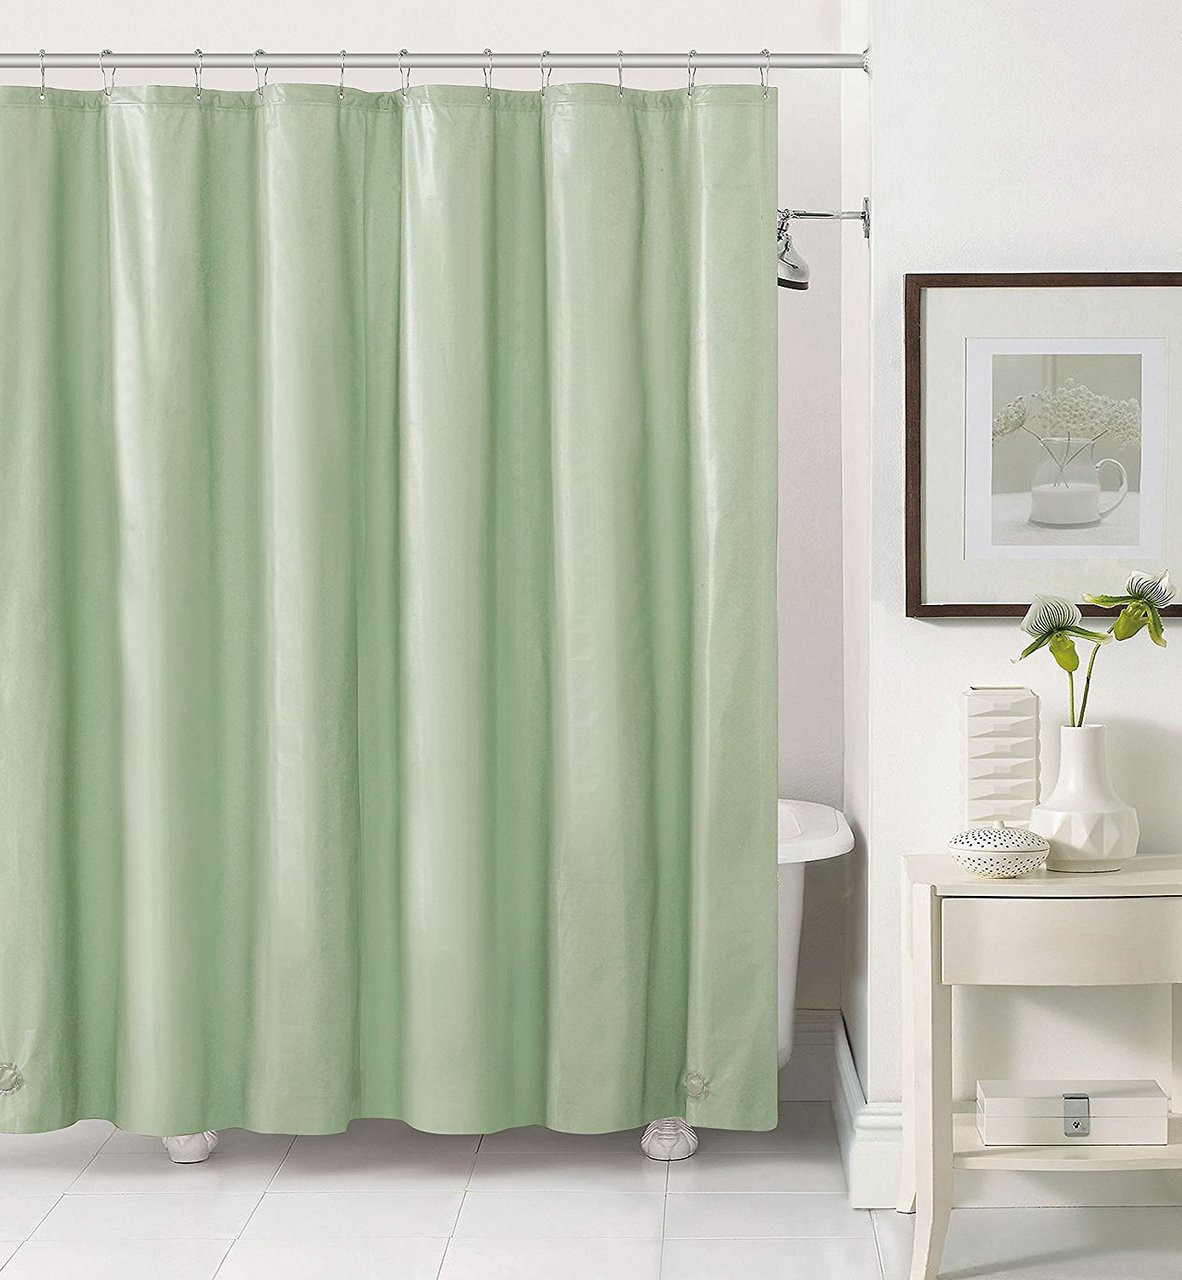 Magnets Grommets Gold Shower Curtain Liner Mold Mildew Bacteria Resistant